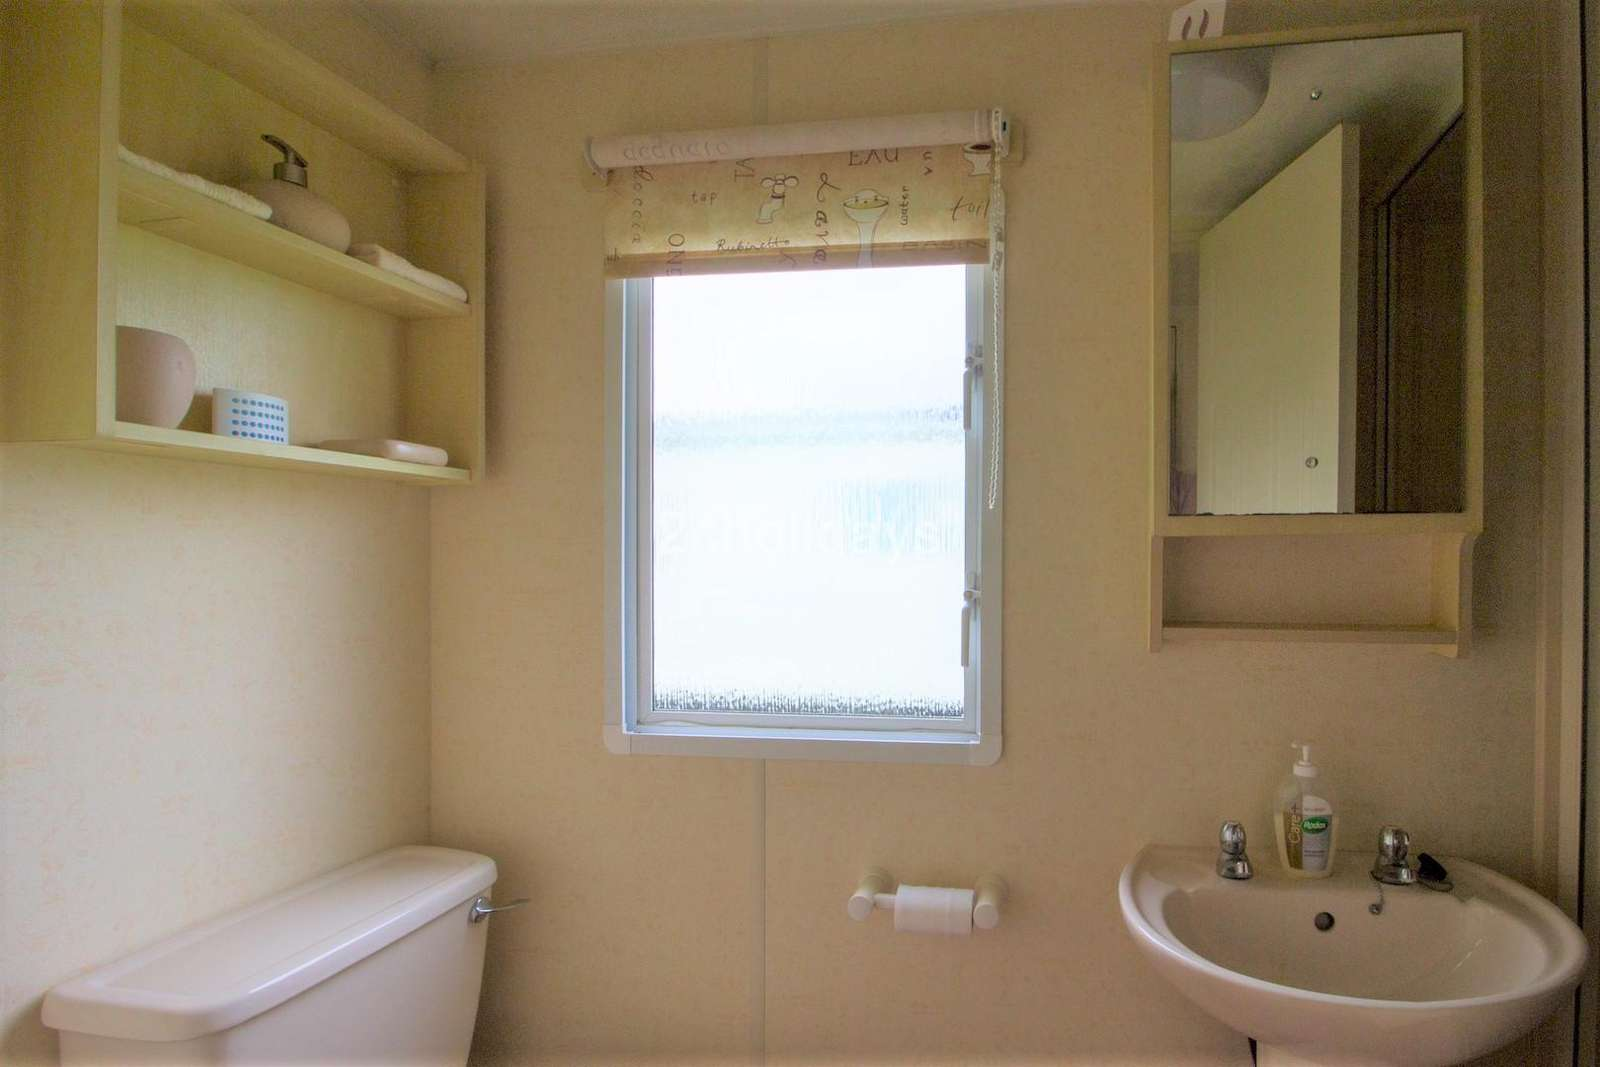 We ensure that all of our holiday homes are cleaned to a high standard